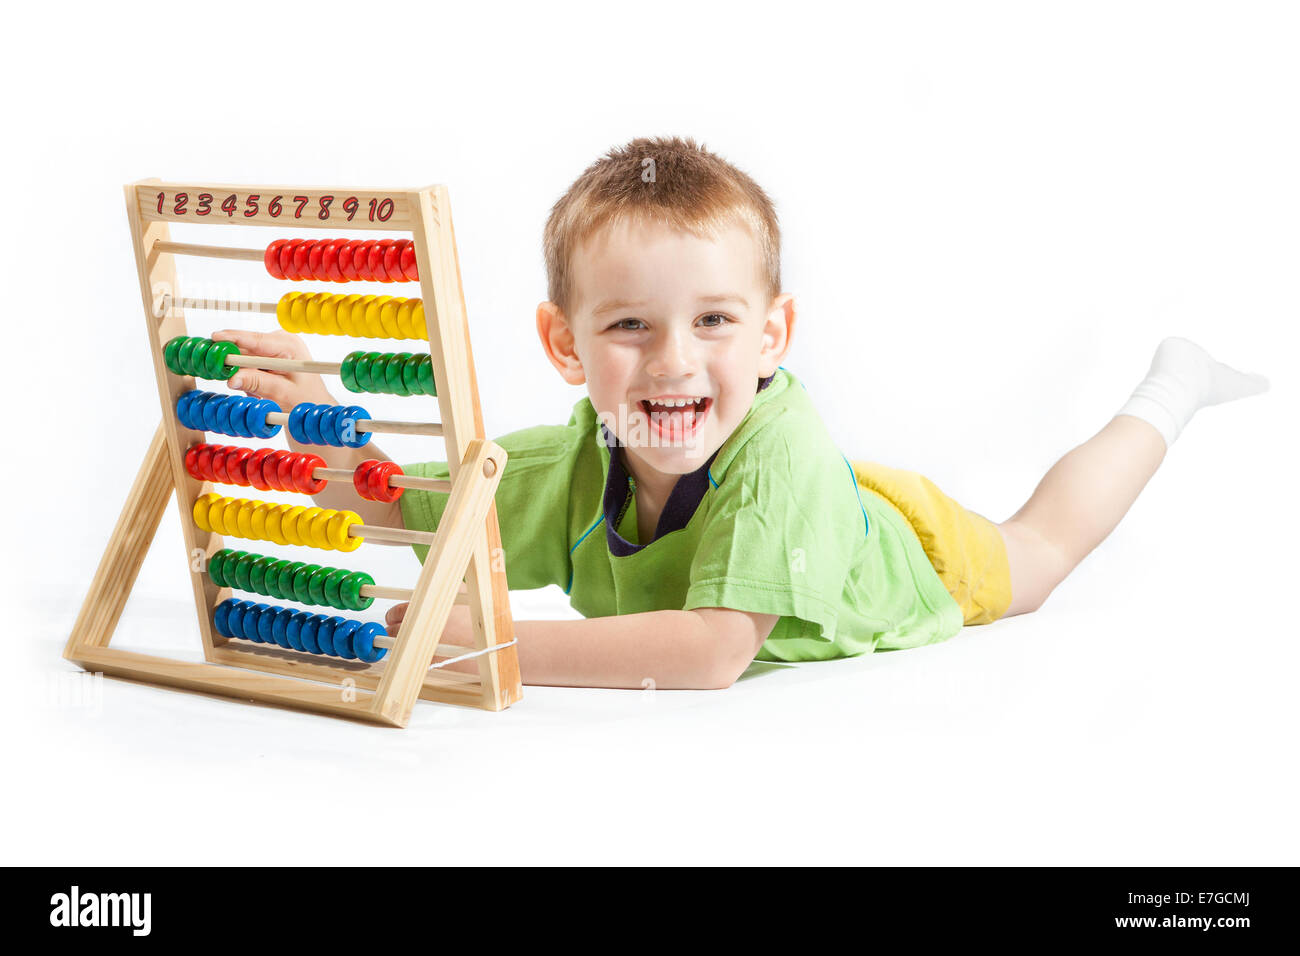 jolly baby boy with abacus isolated on white background - Stock Image